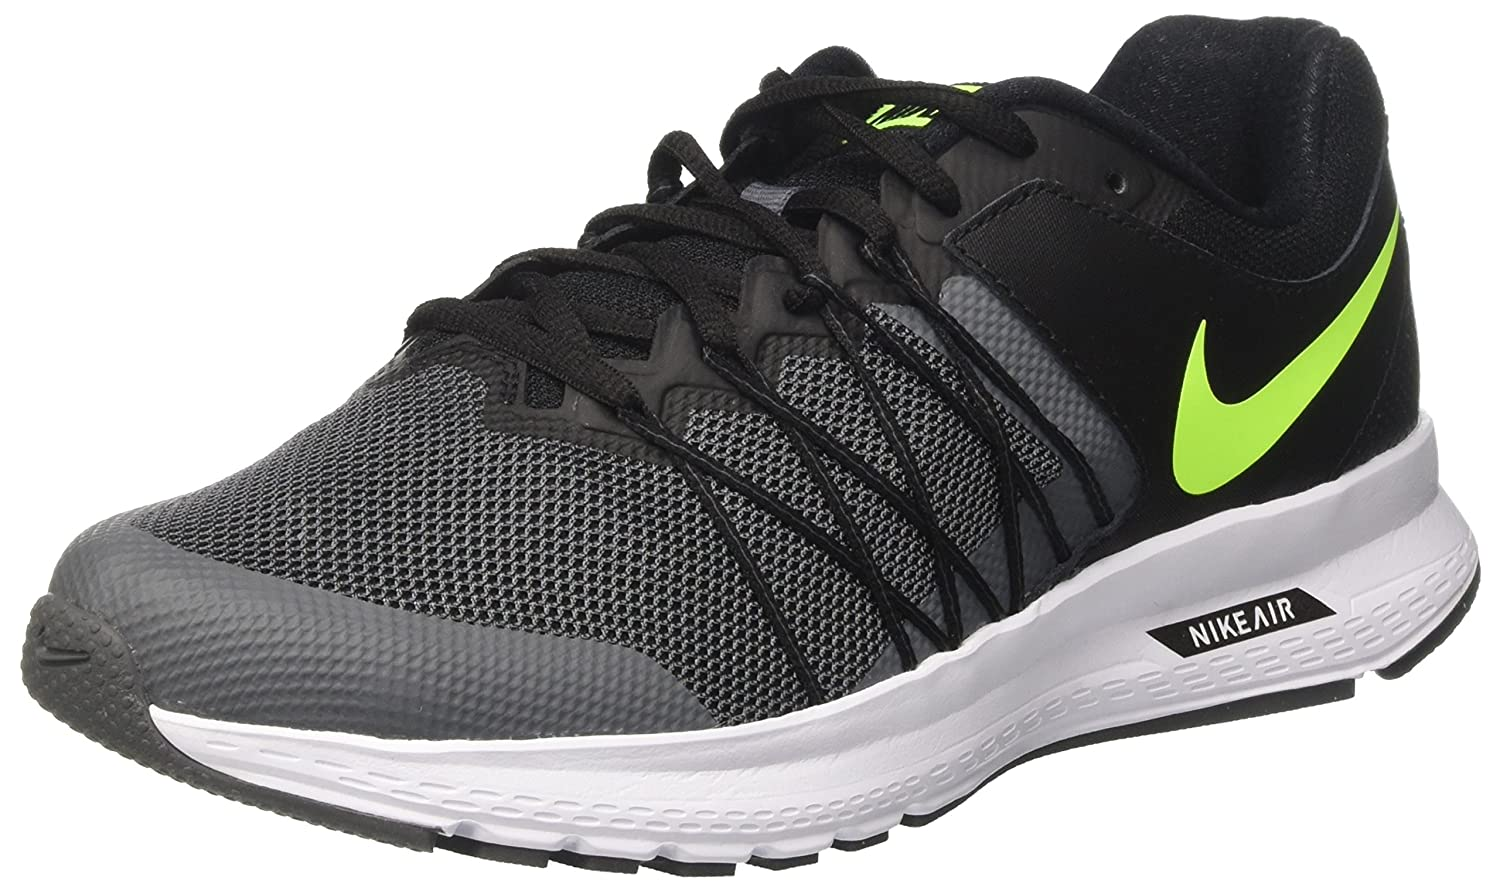 4f232376e78 Nike Air Relentless 6 Black Volt Dark Grey White Men s Running Shoes  Buy  Online at Low Prices in India - Amazon.in